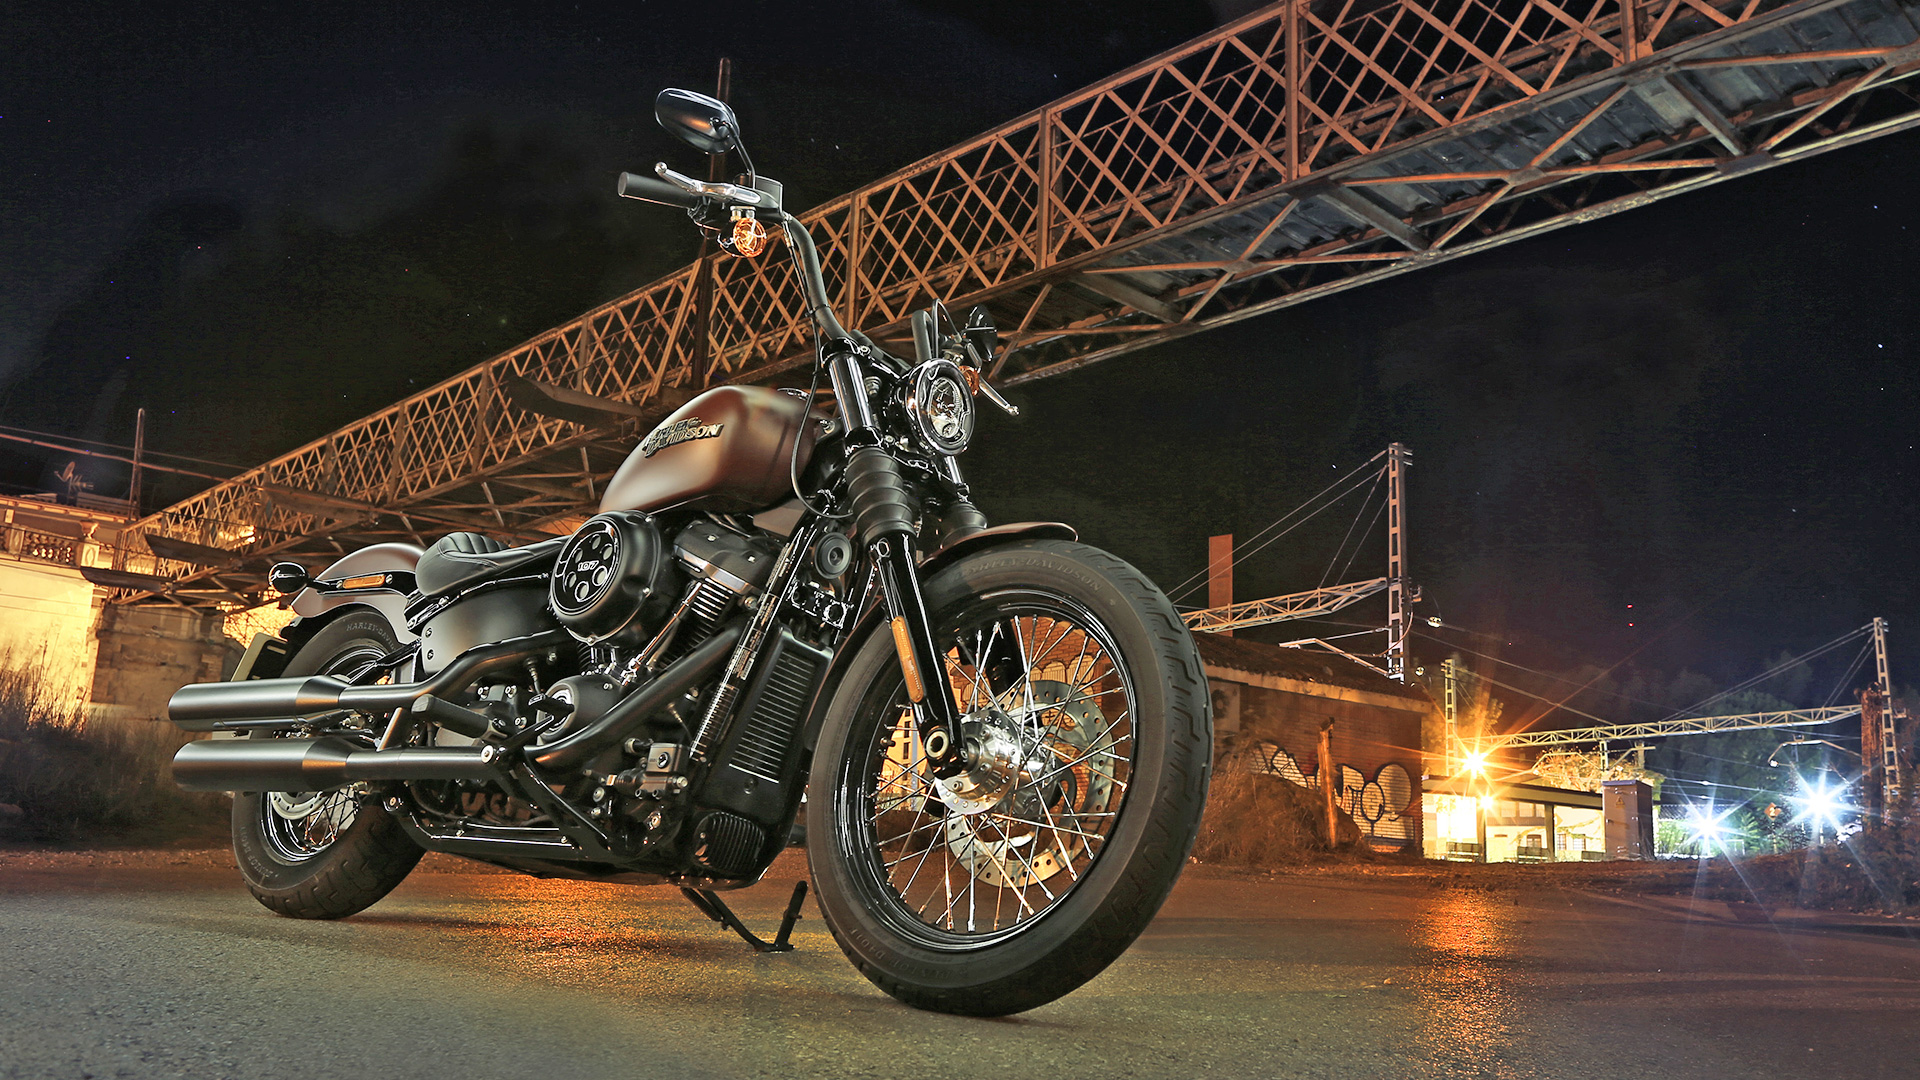 2018 Harley Davidson Street Bob >> Harley-Davidson Street Bob 2018 107 - Price, Mileage, Reviews, Specification, Gallery - Overdrive